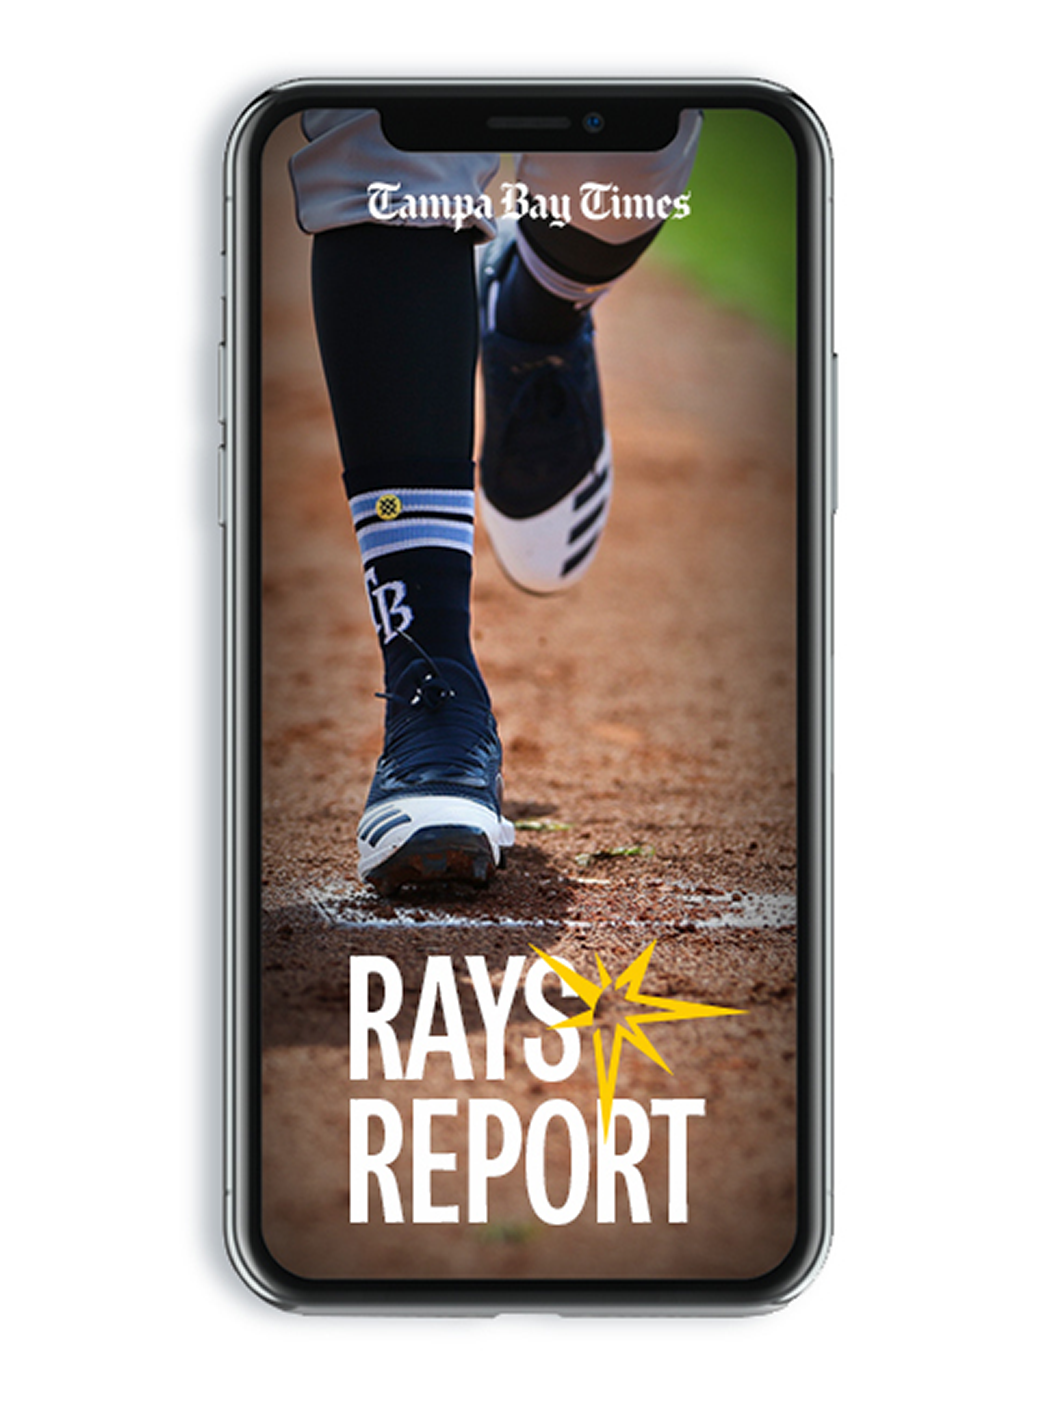 The Tampa Bay Times 'Rays Report' newsletter